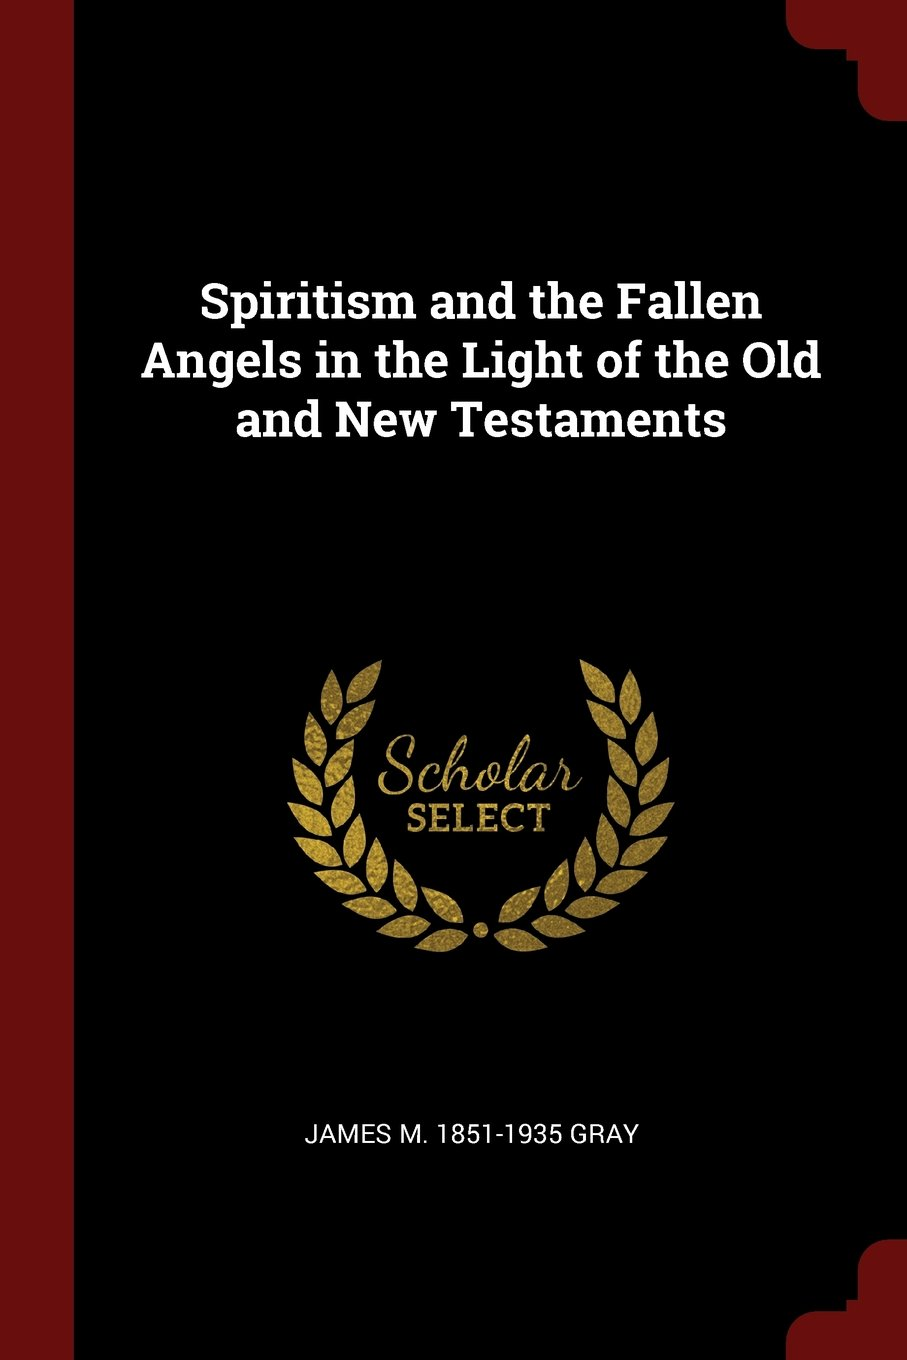 Download Spiritism and the Fallen Angels in the Light of the Old and New Testaments PDF